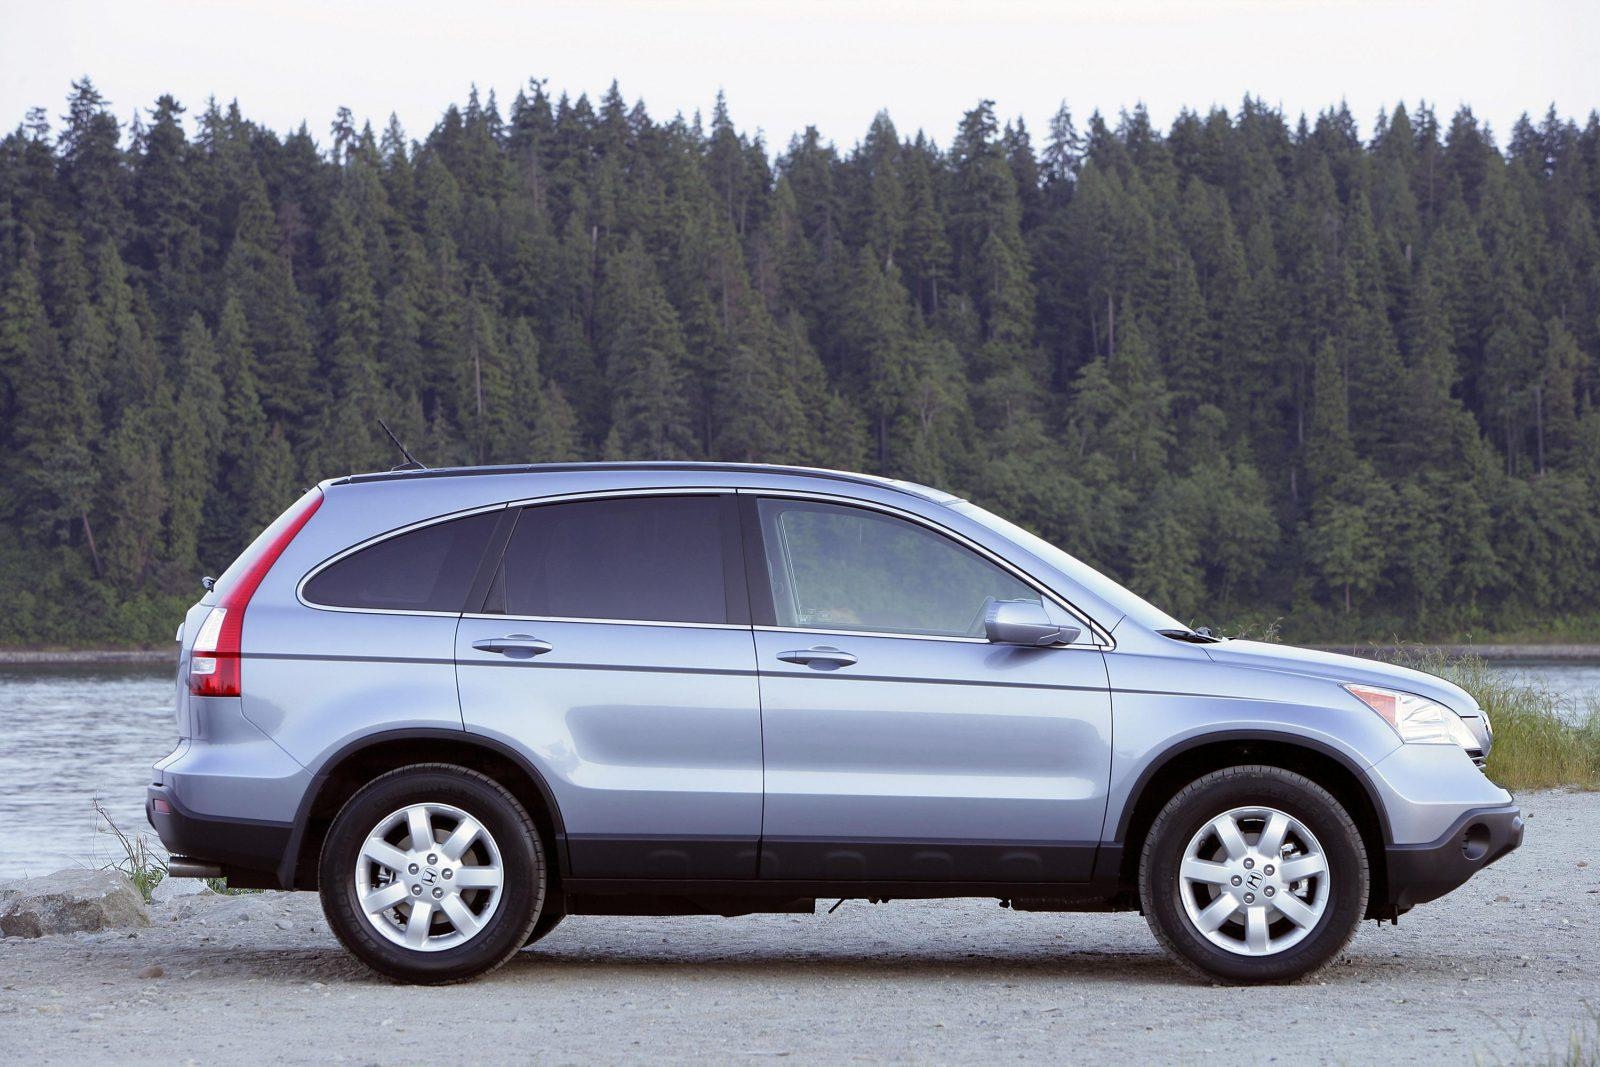 2008 Honda Crv Review For Suv Lovers Car From Japan